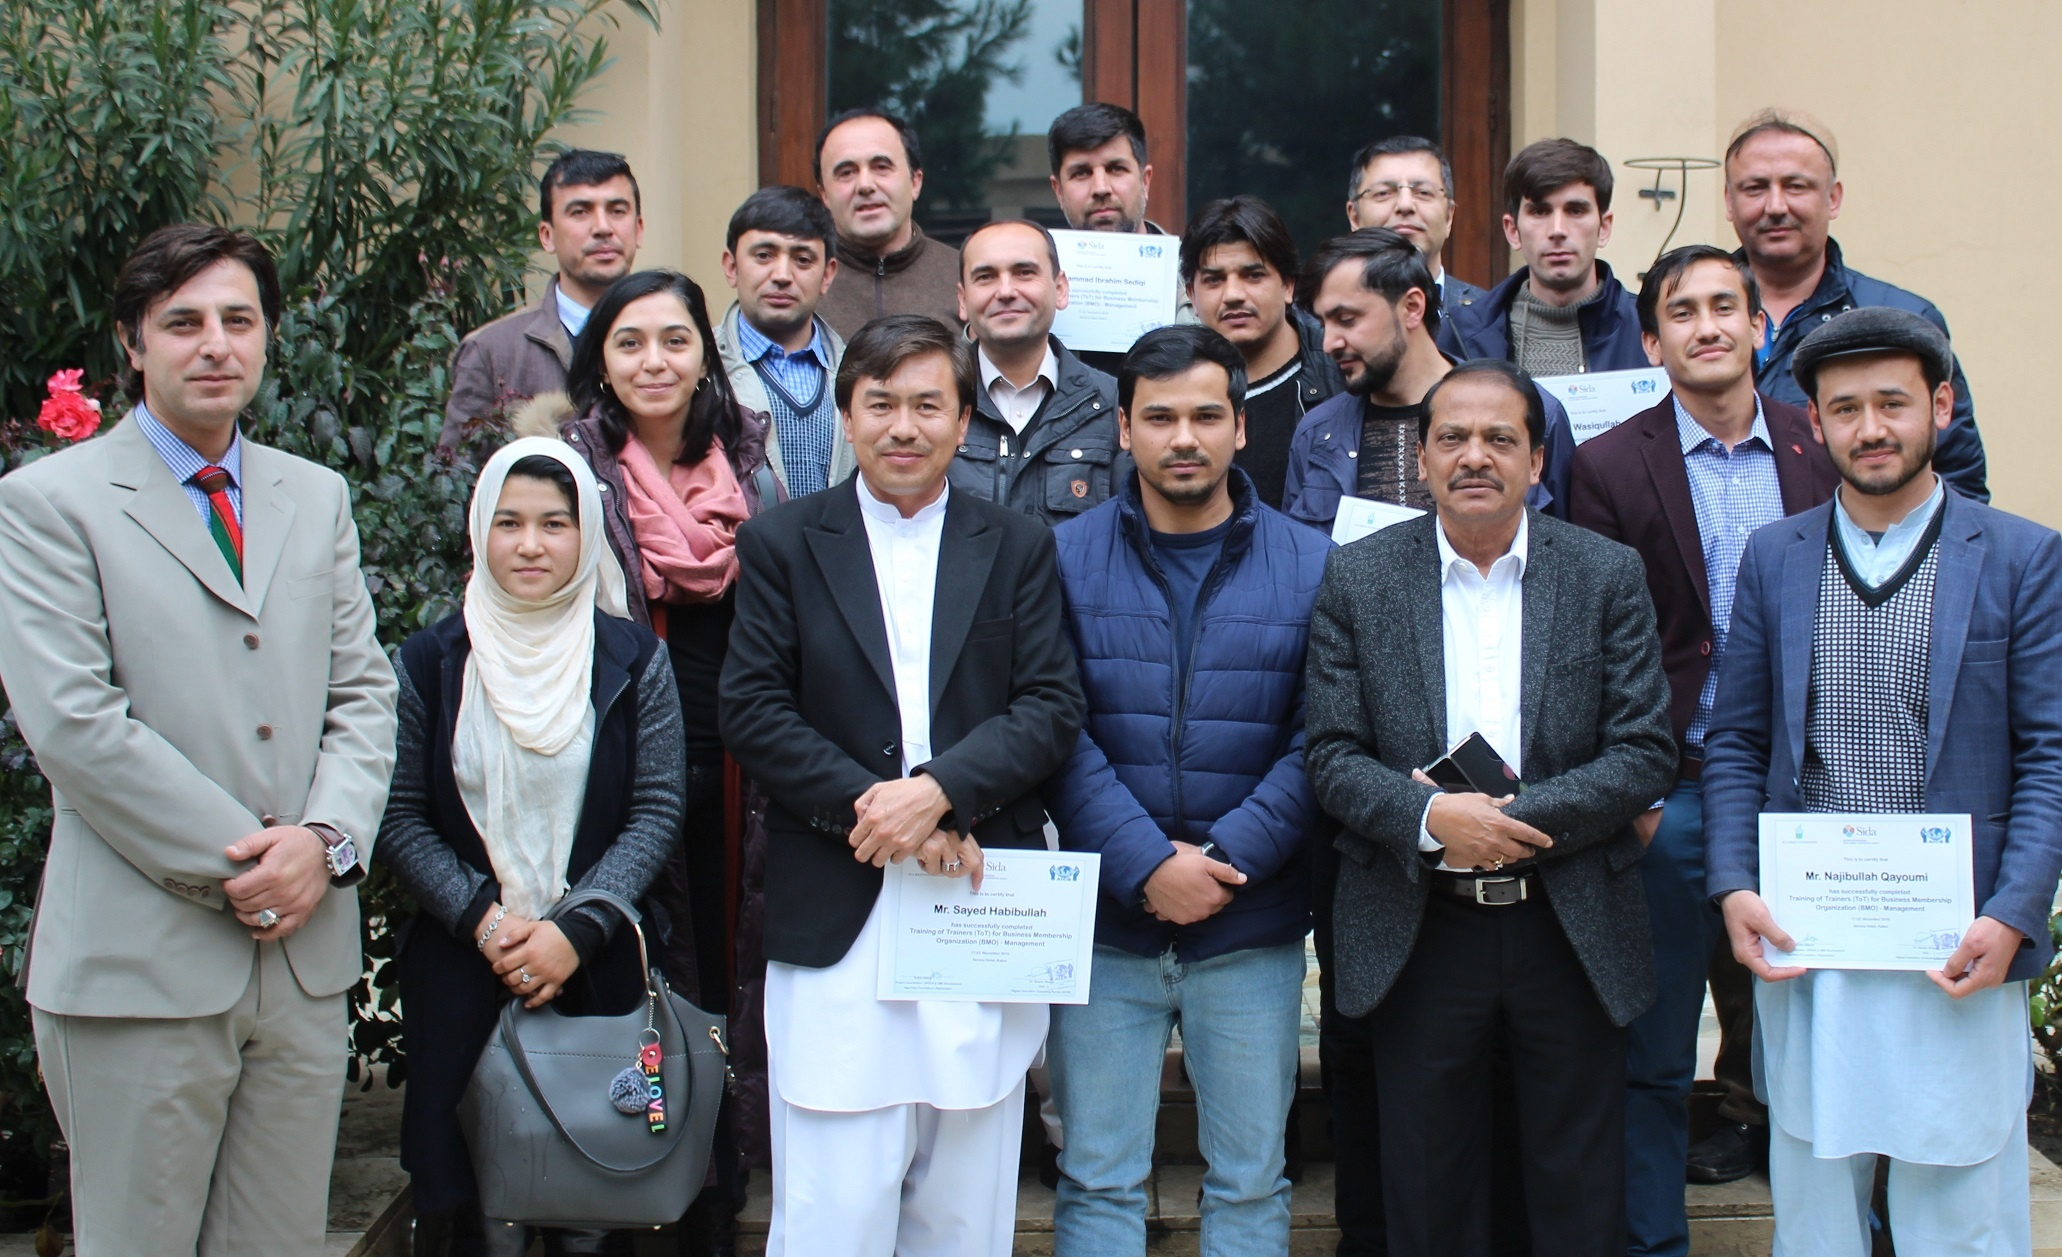 A project has been completed and people are standing holding their certificates, aicb, afghan innovative consulting bureau, consultancy, advisor, consultant, consultancy in Afghanistan, best consultancy